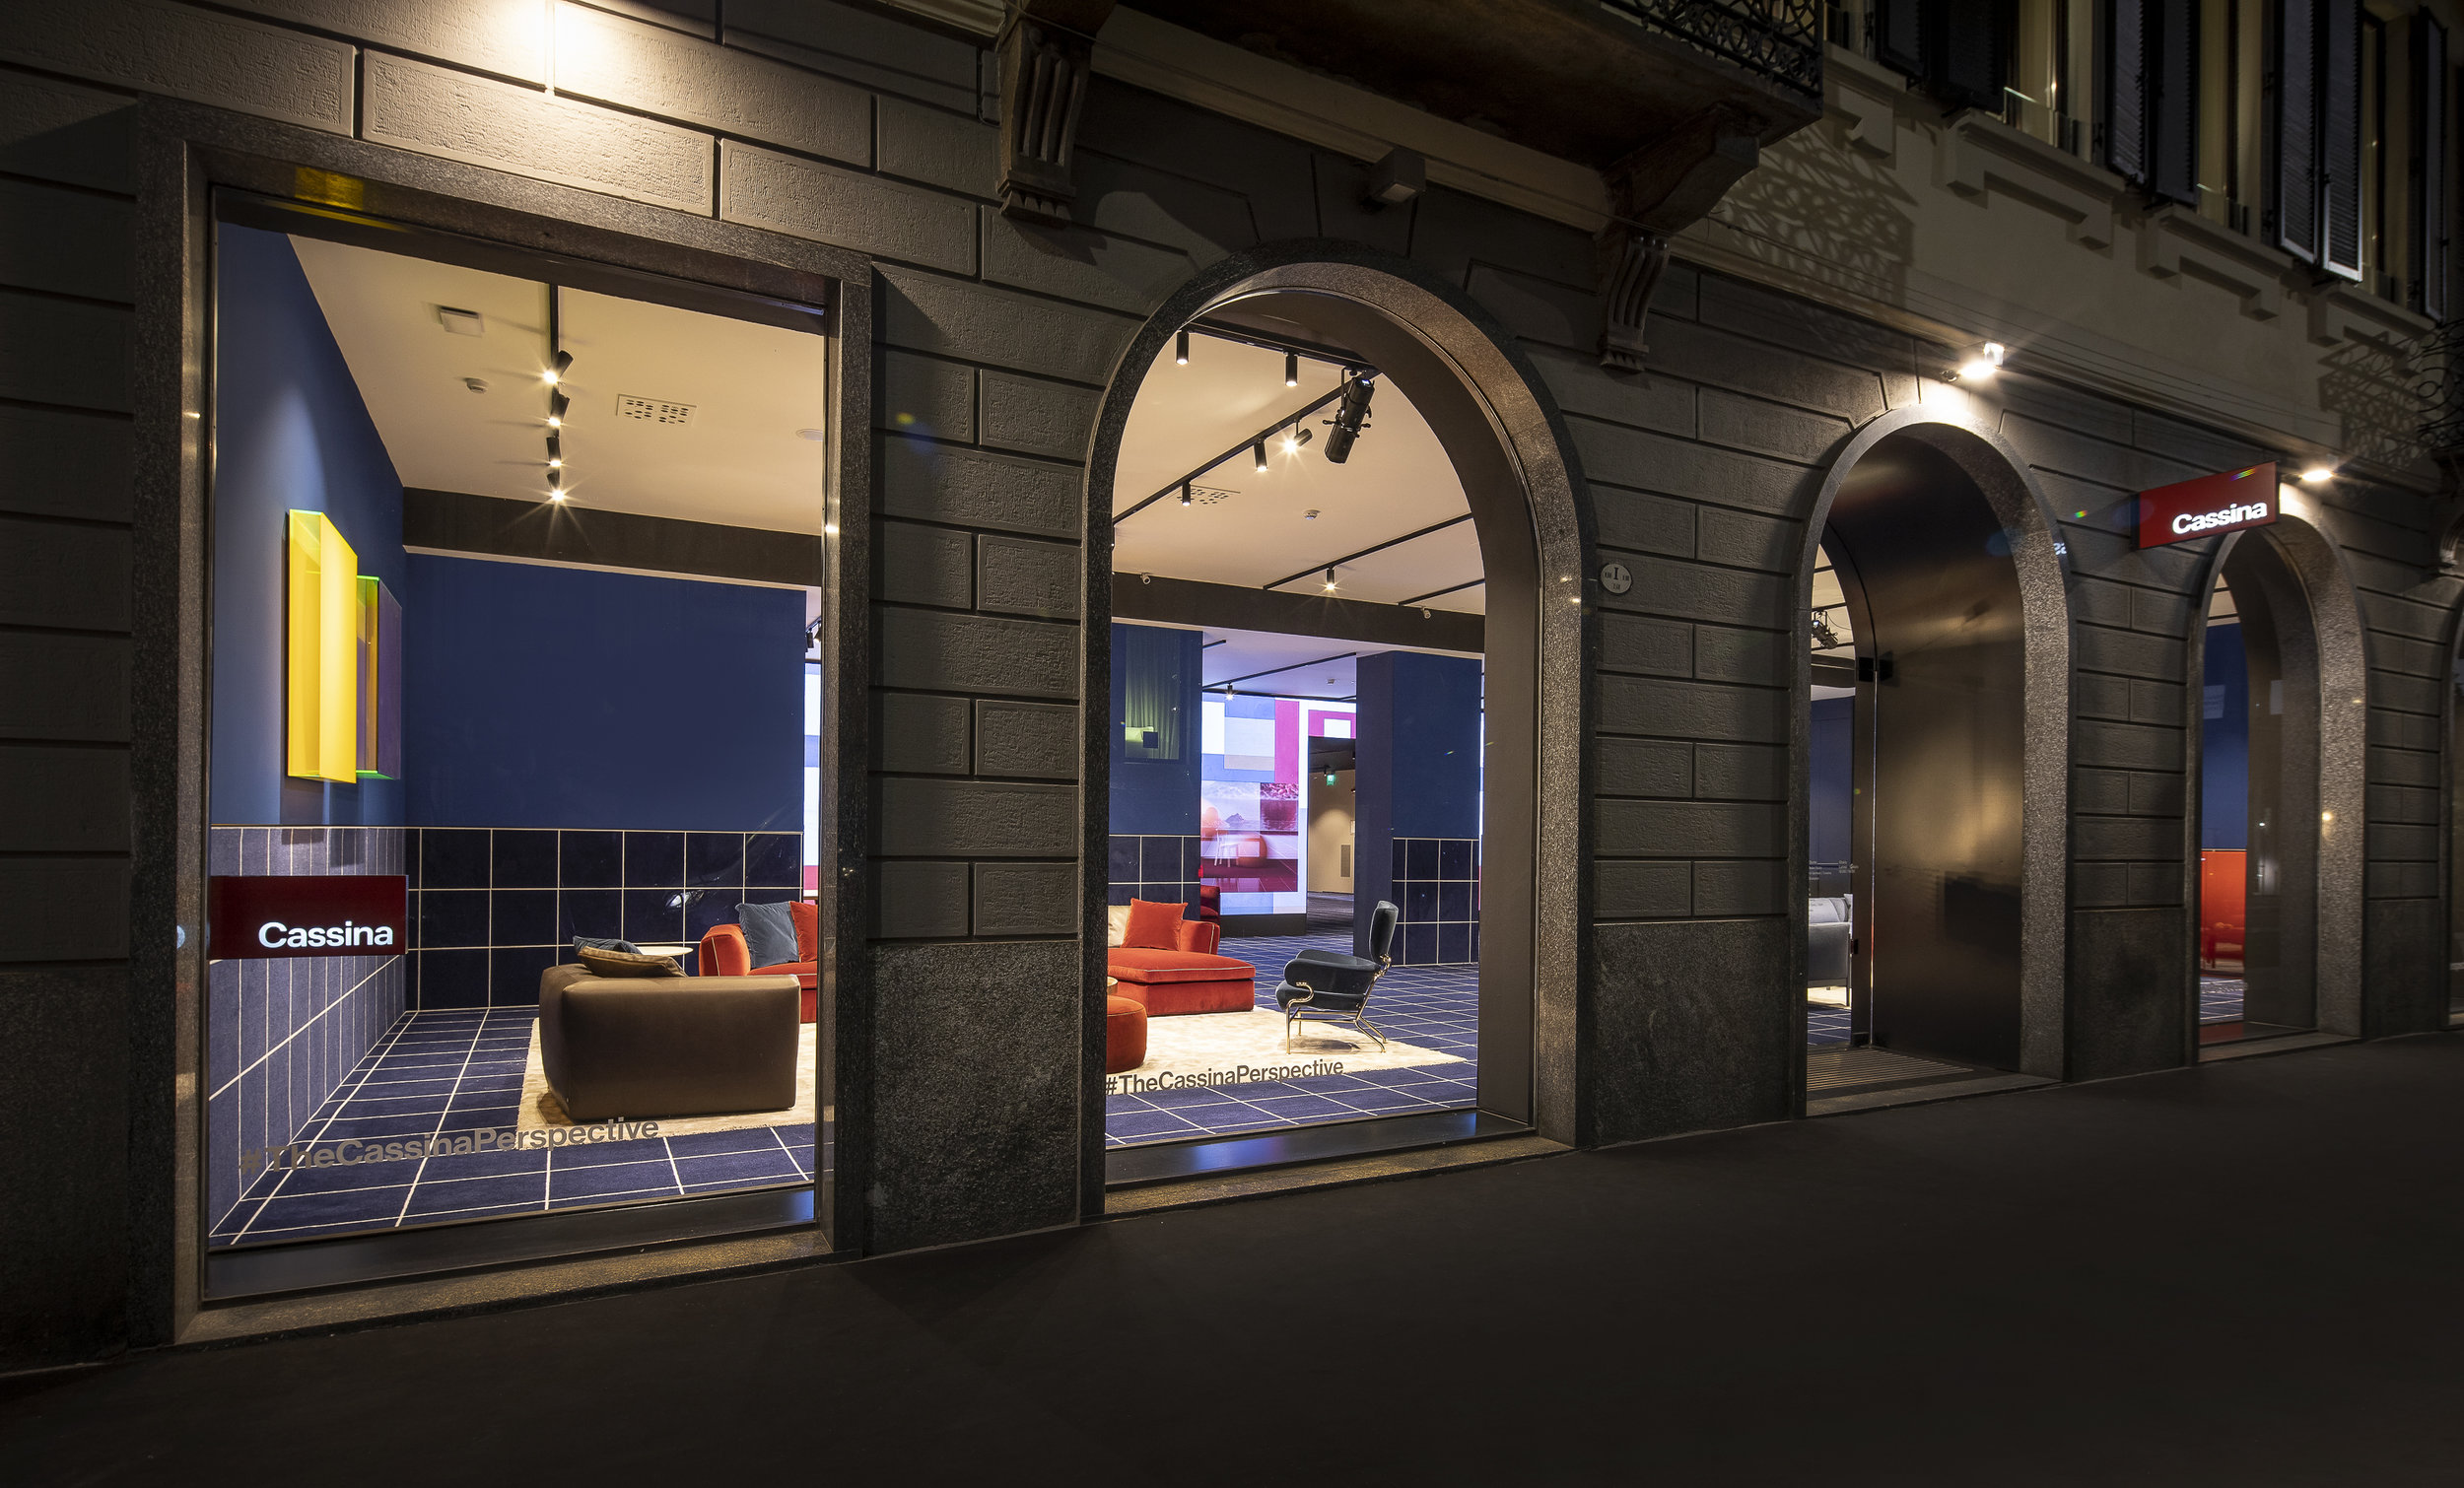 'The Cassina Perspective' installation curated by art director Patricia Urquiola. Photography © Stefano de Monte.